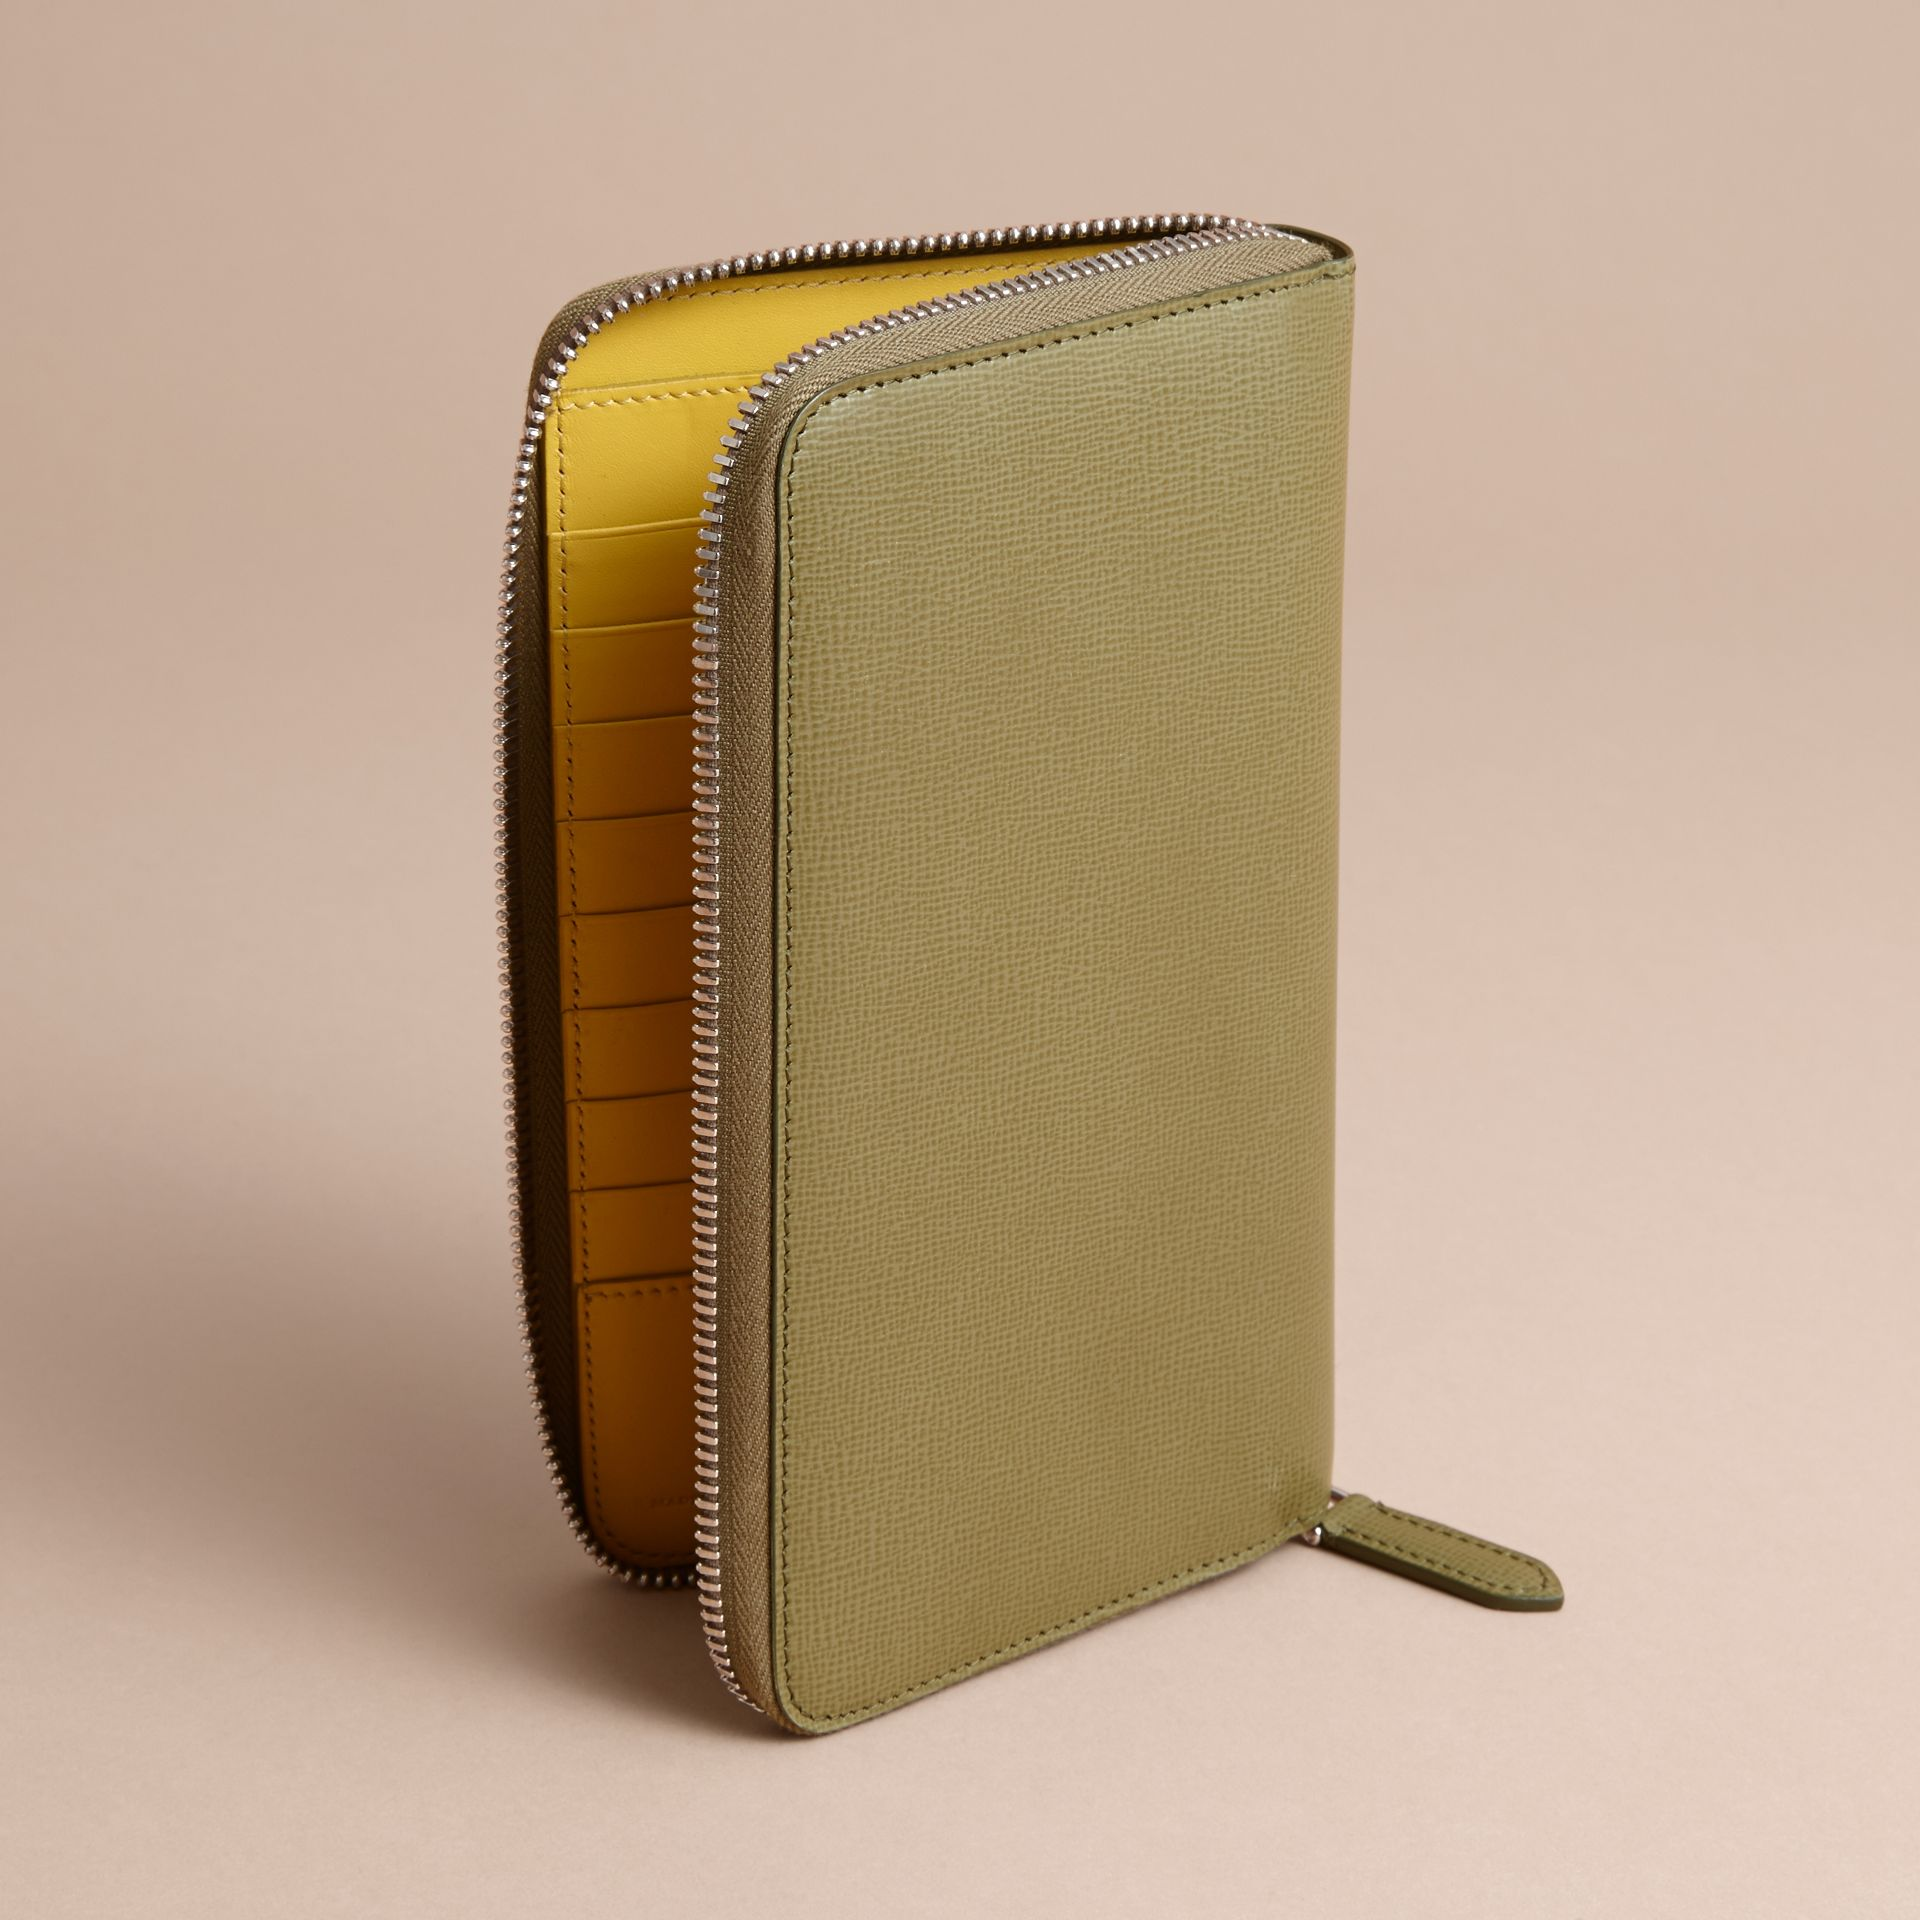 London Leather Ziparound Wallet in Olive Green | Burberry Singapore - gallery image 4